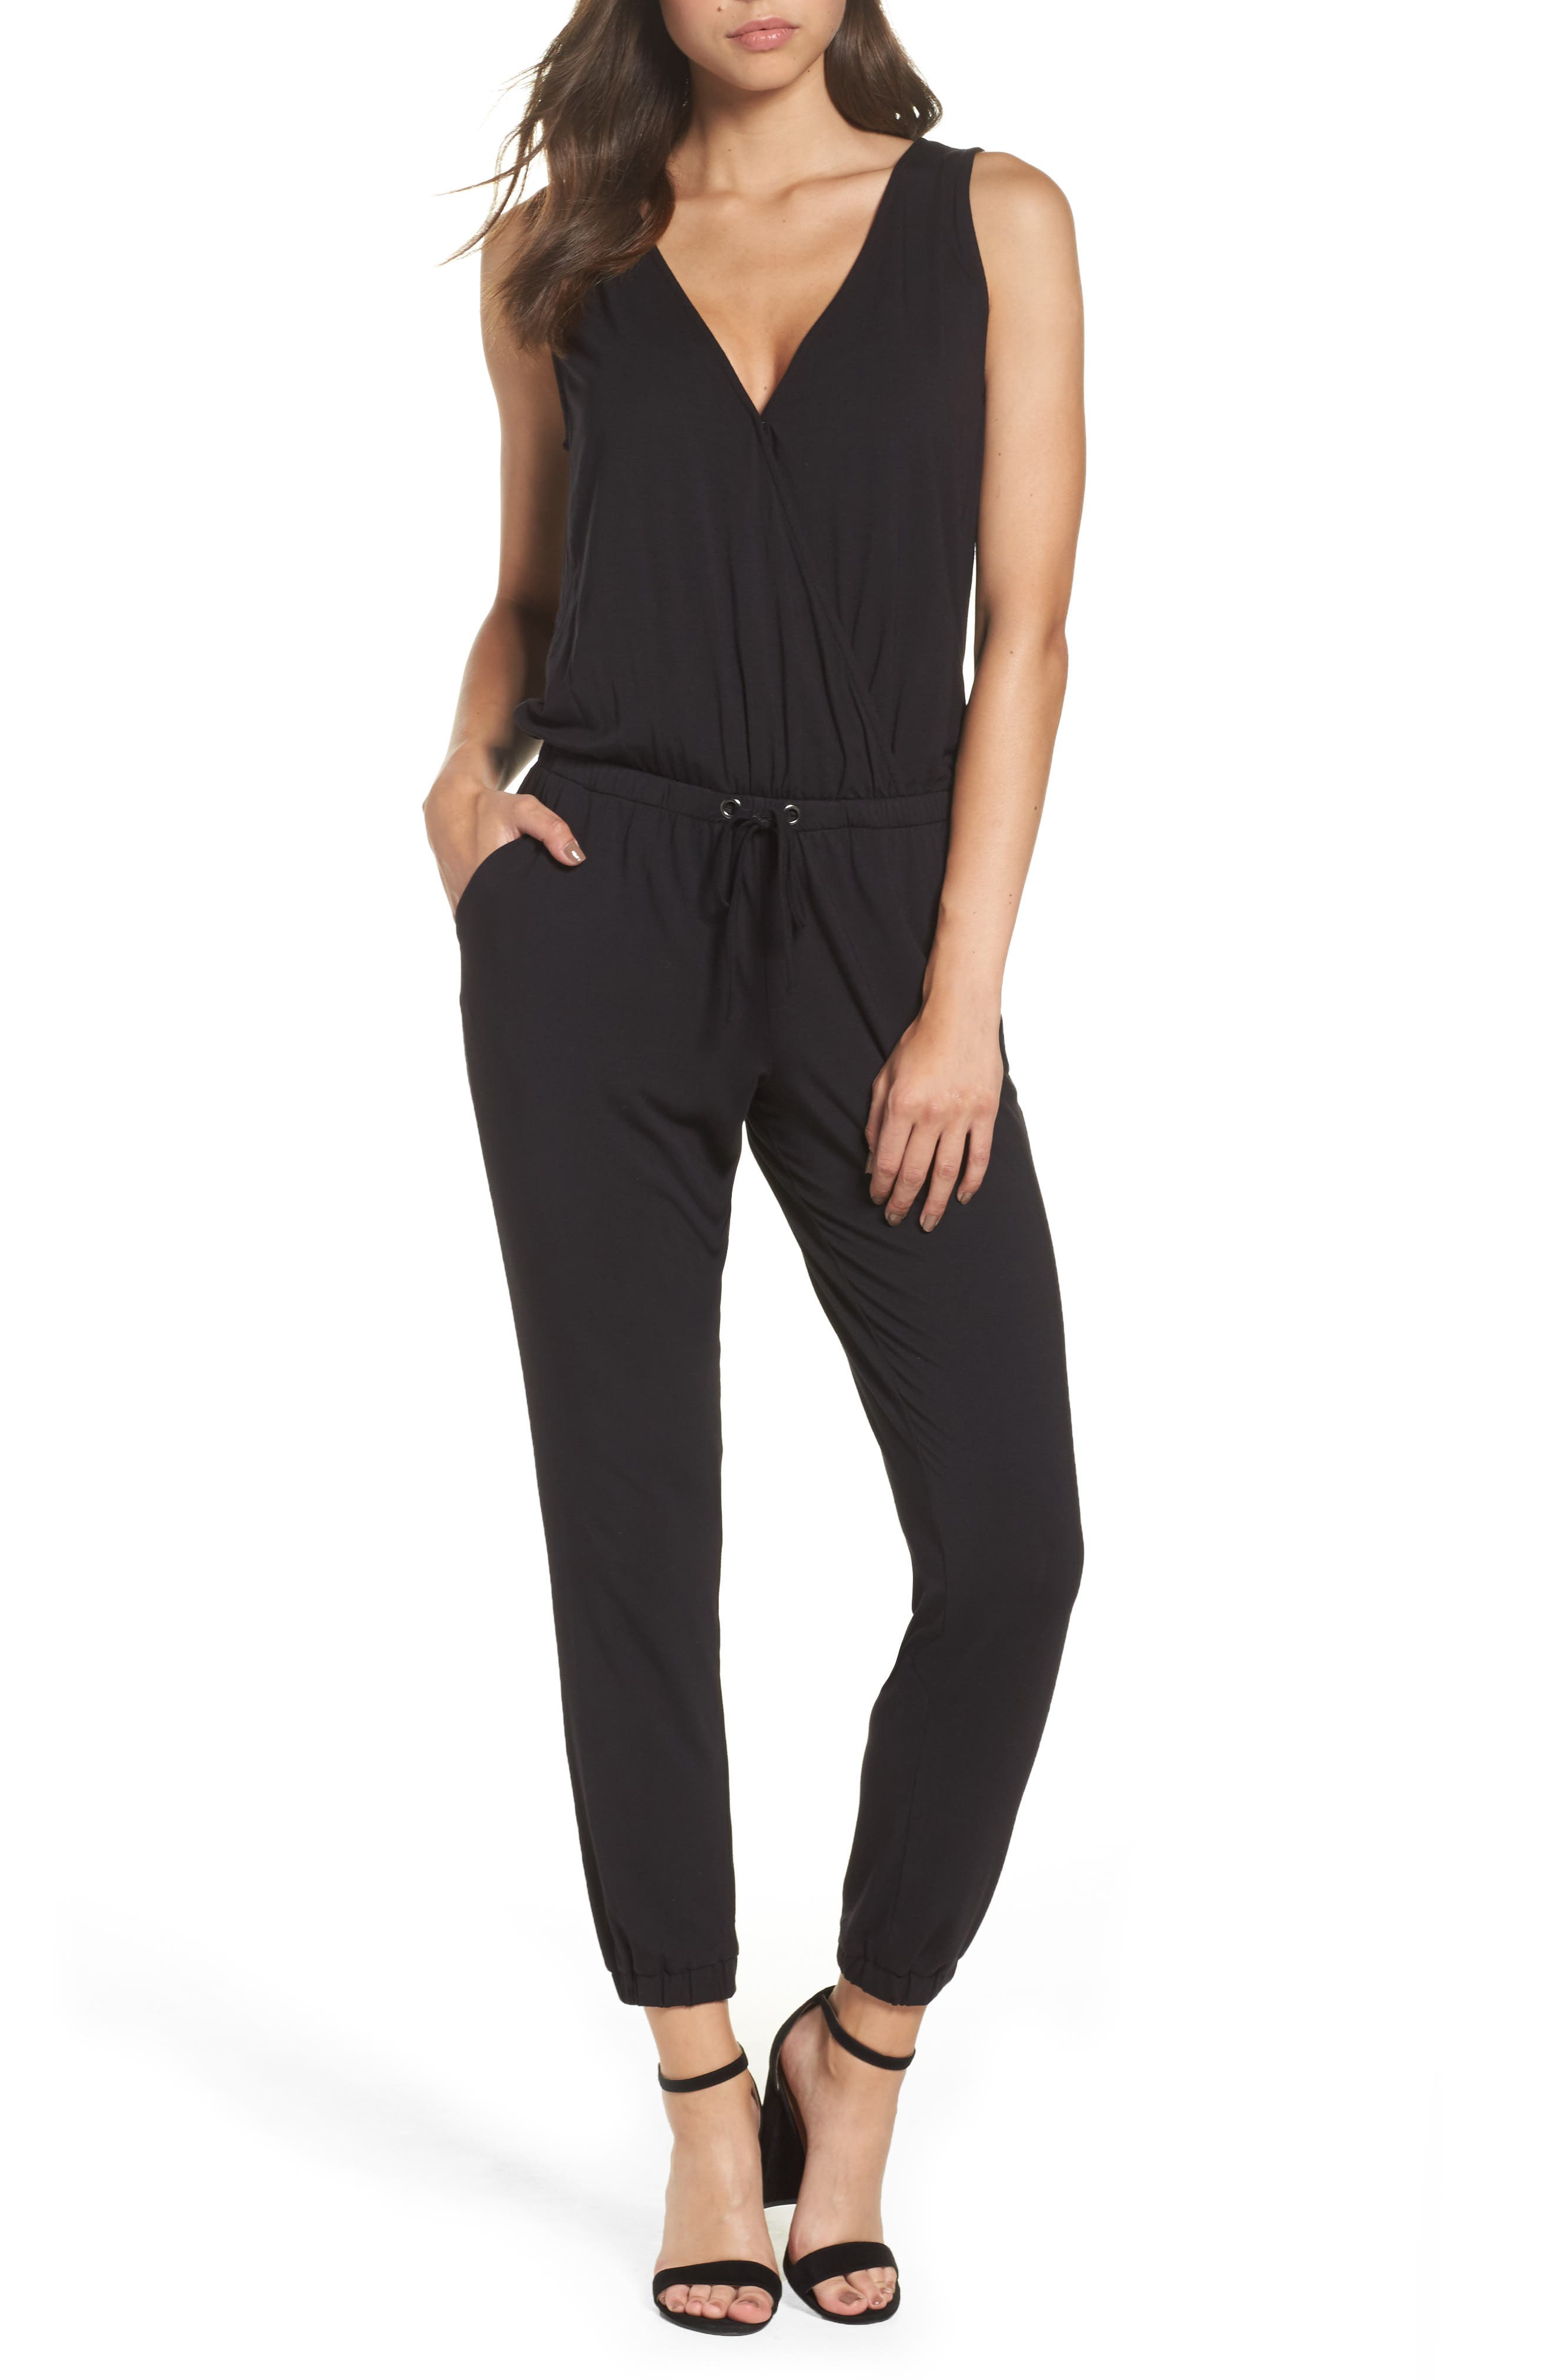 Alternate Image 1 Selected - BB Dakota 'Milligan' Sleeveless Jumpsuit